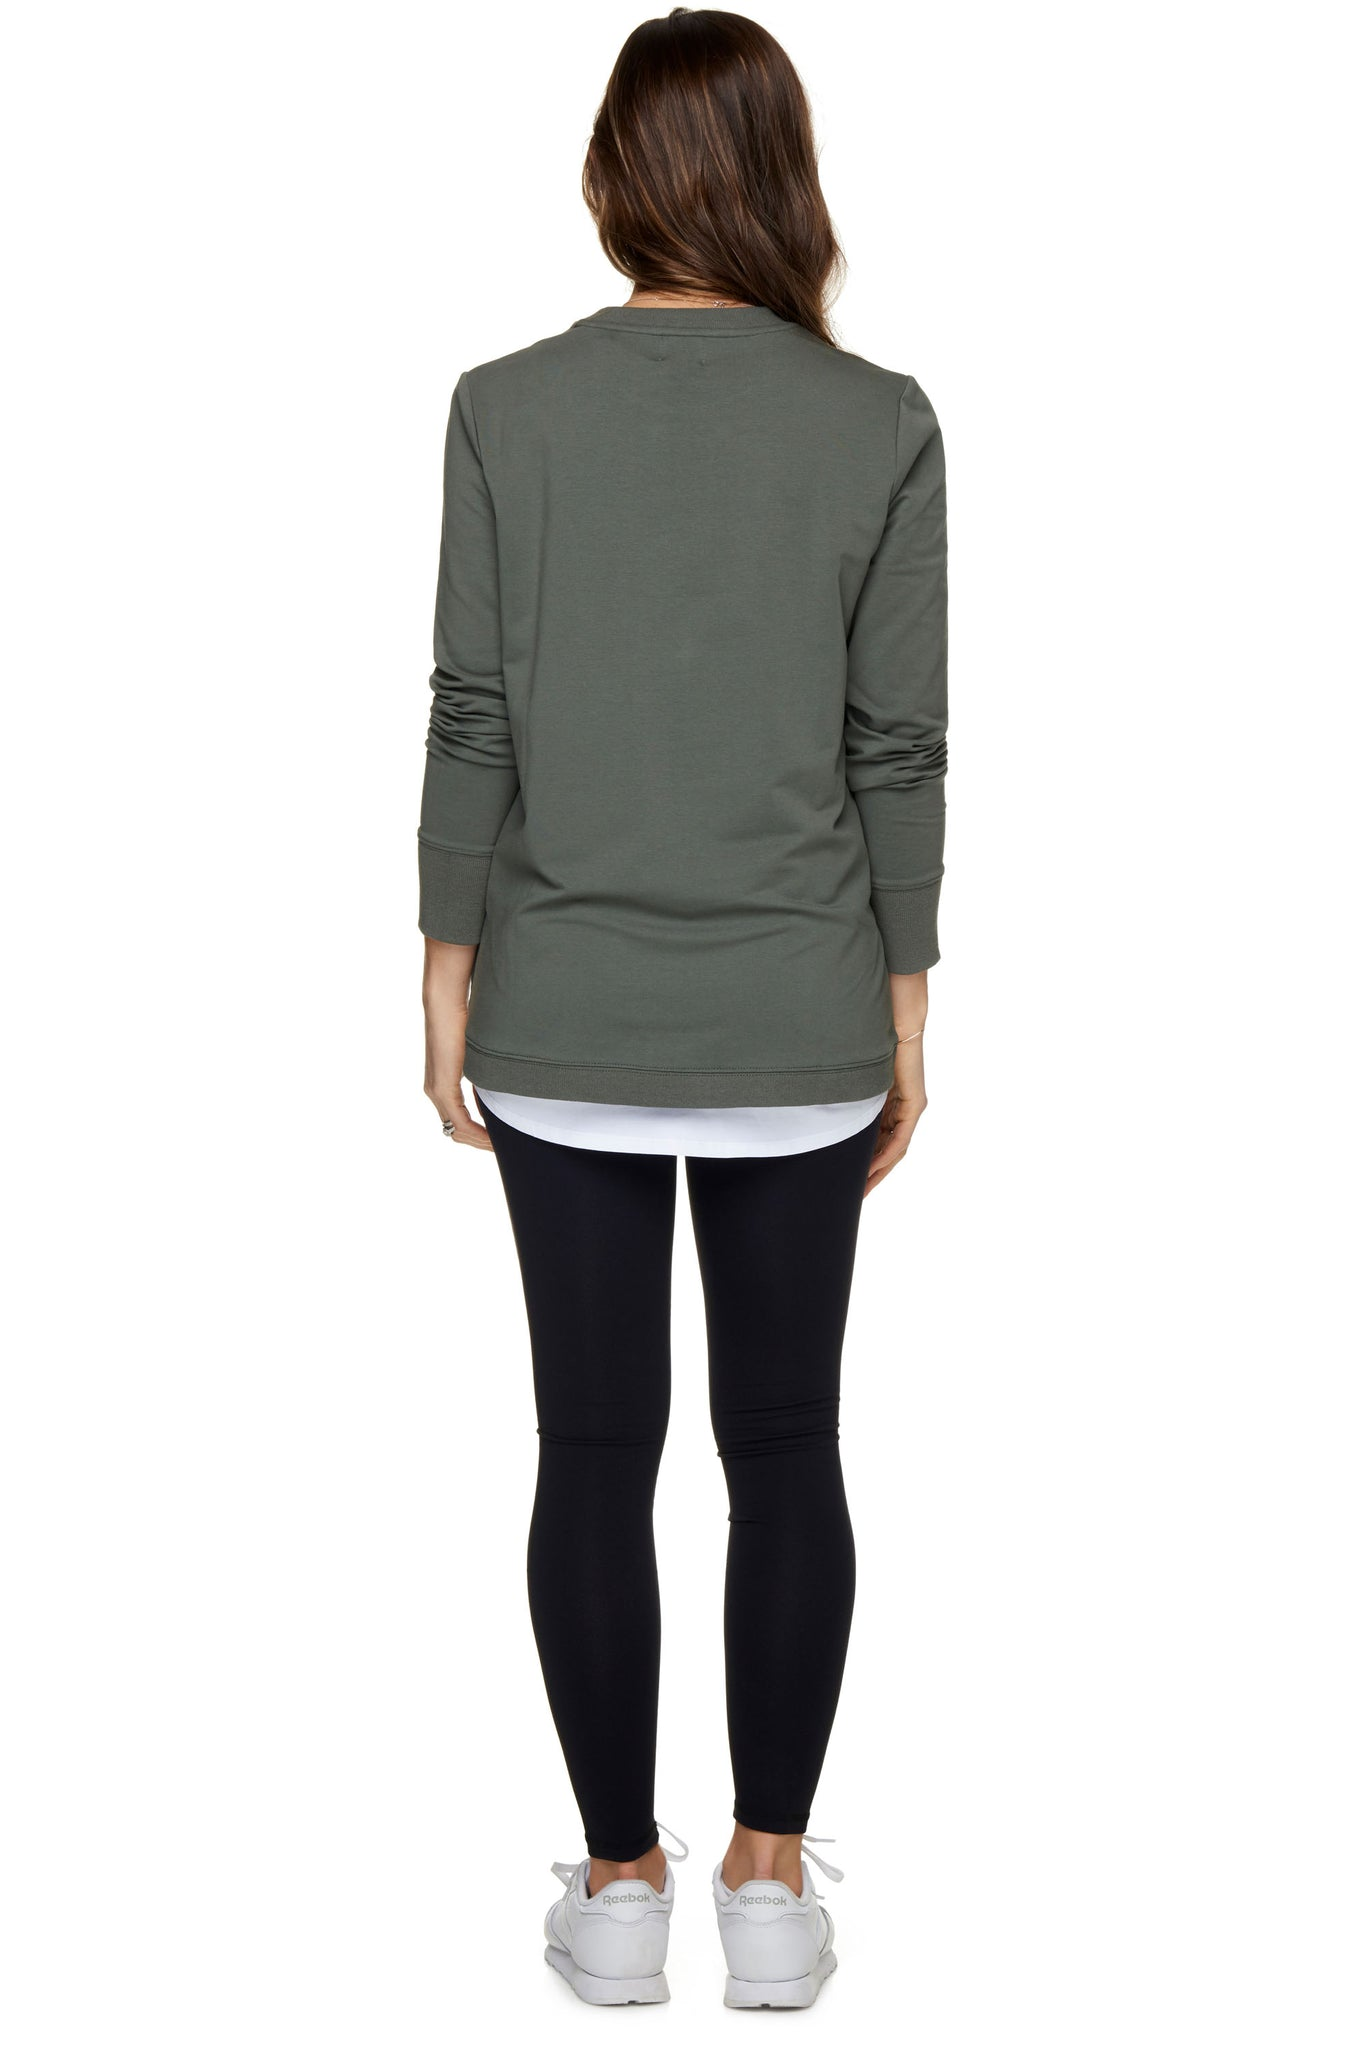 Maternity + Nursing Sweater Top - Khaki 3